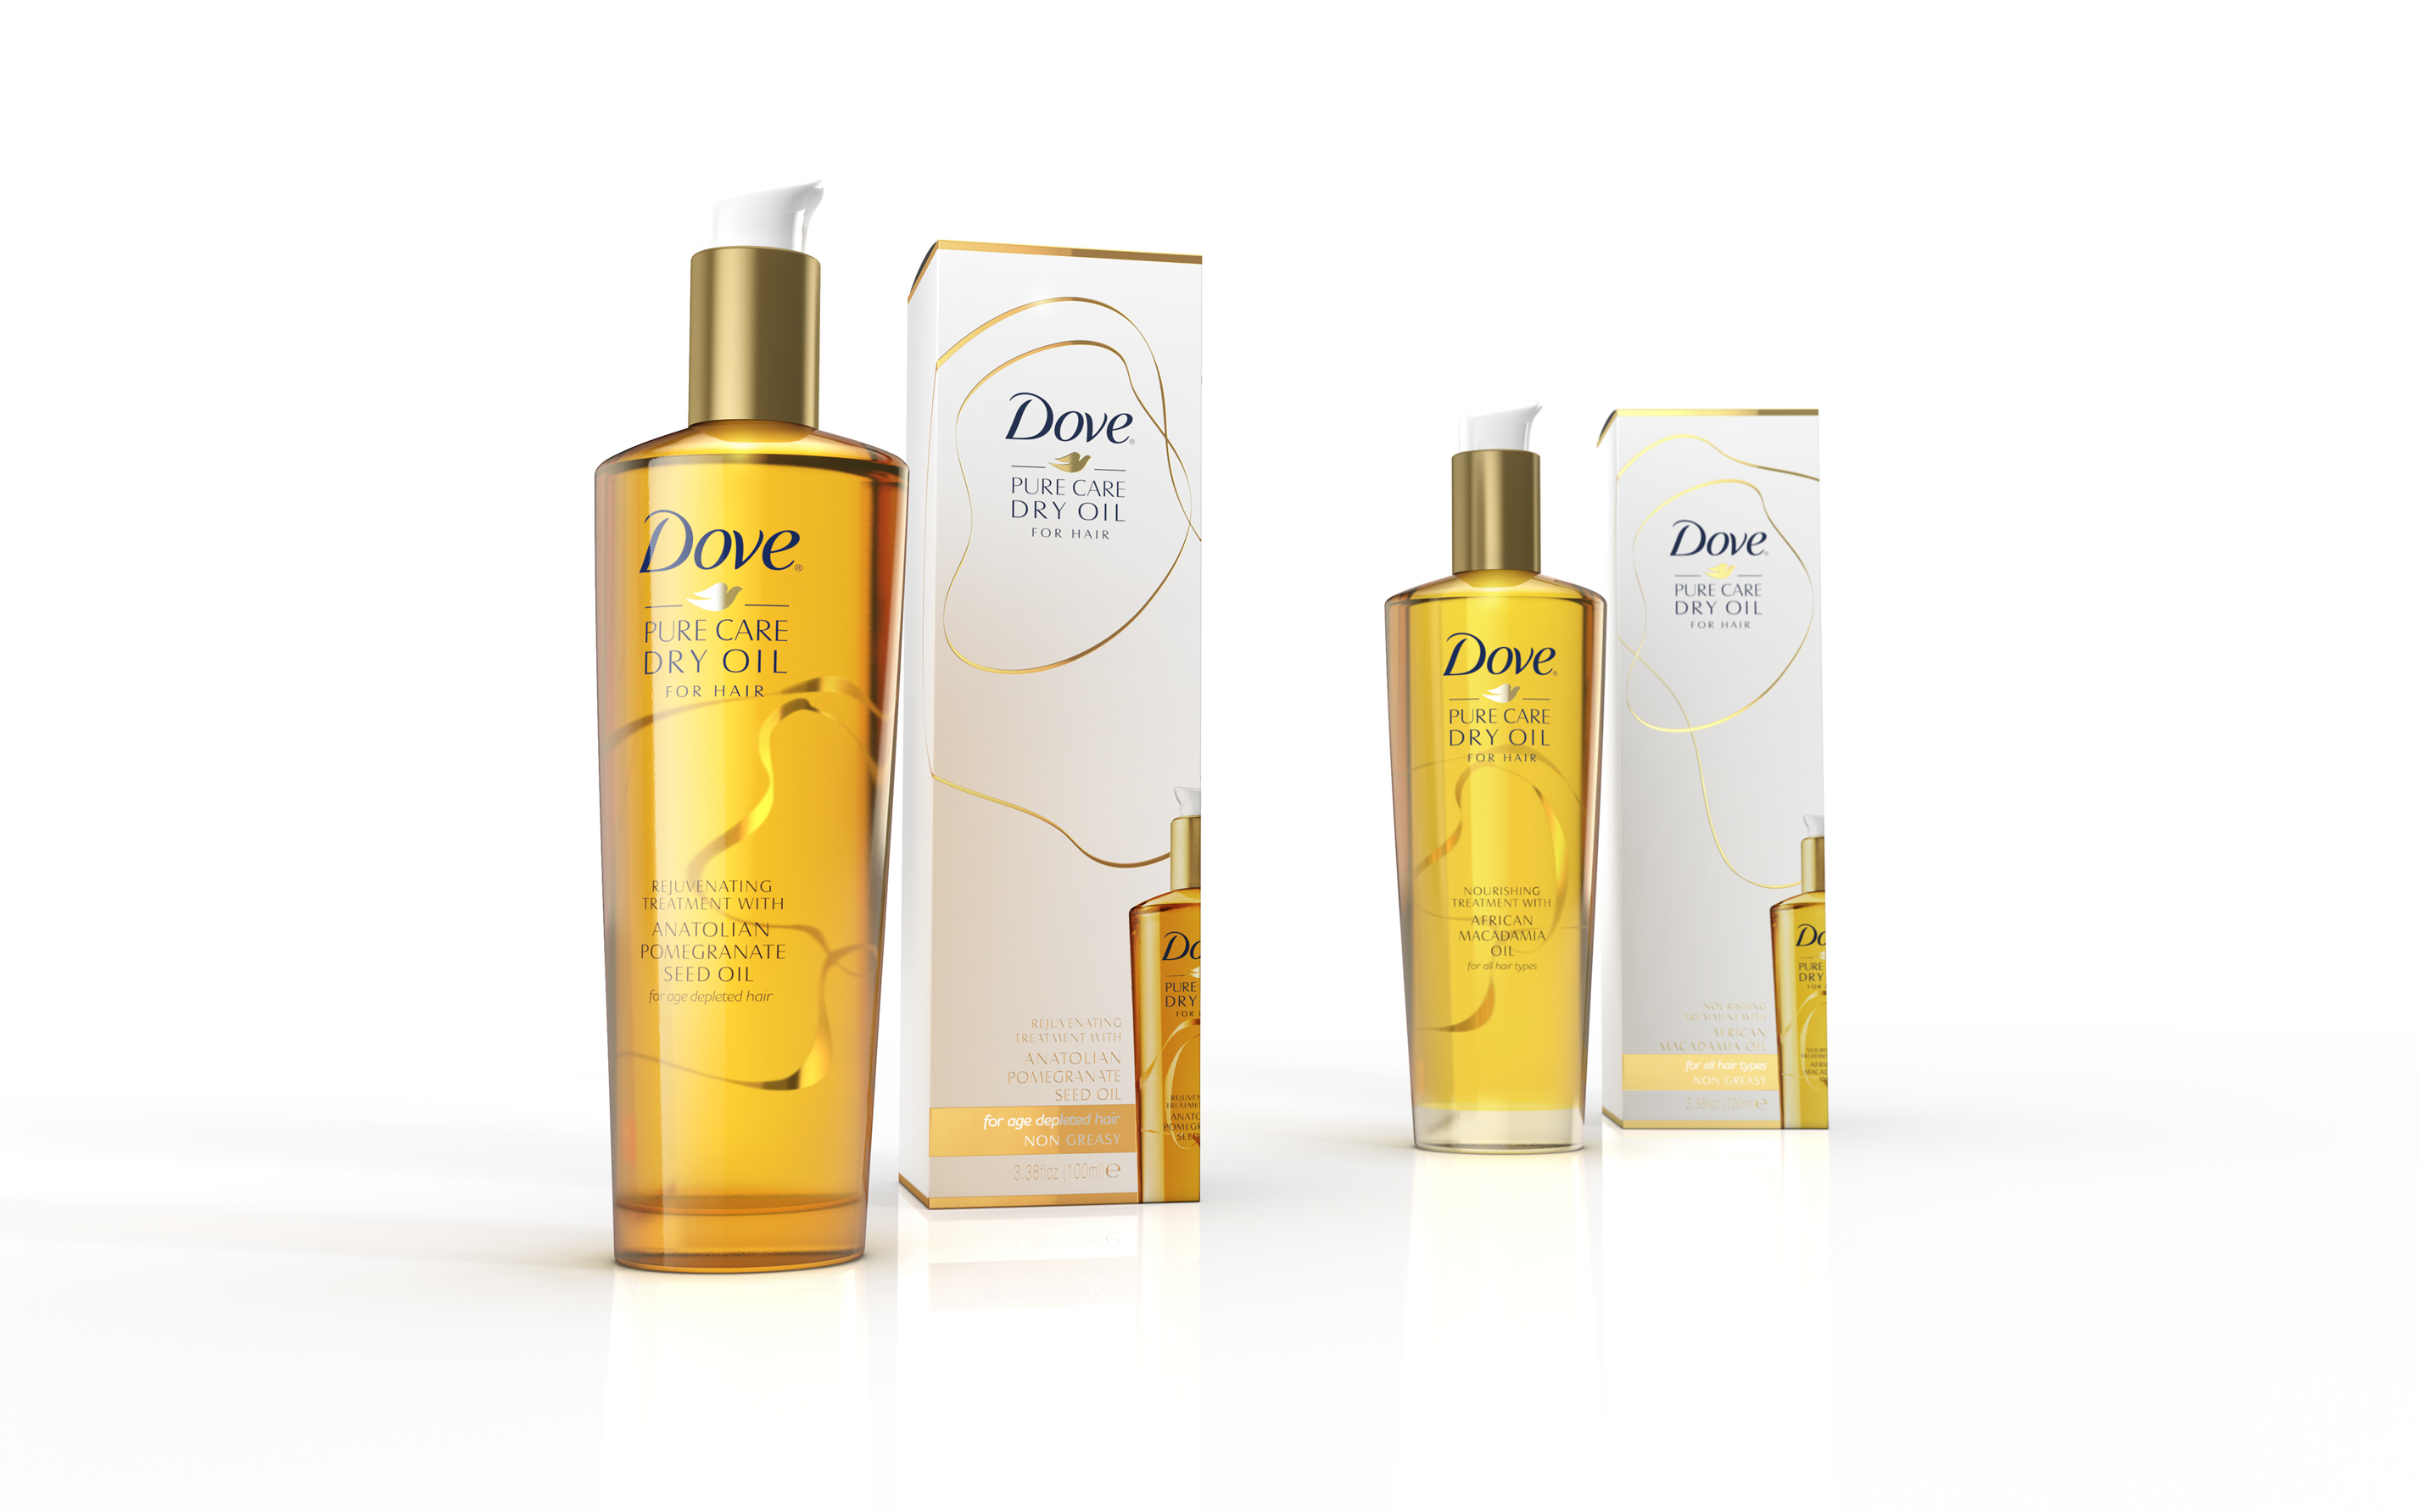 Photo: New Dove's hair care range